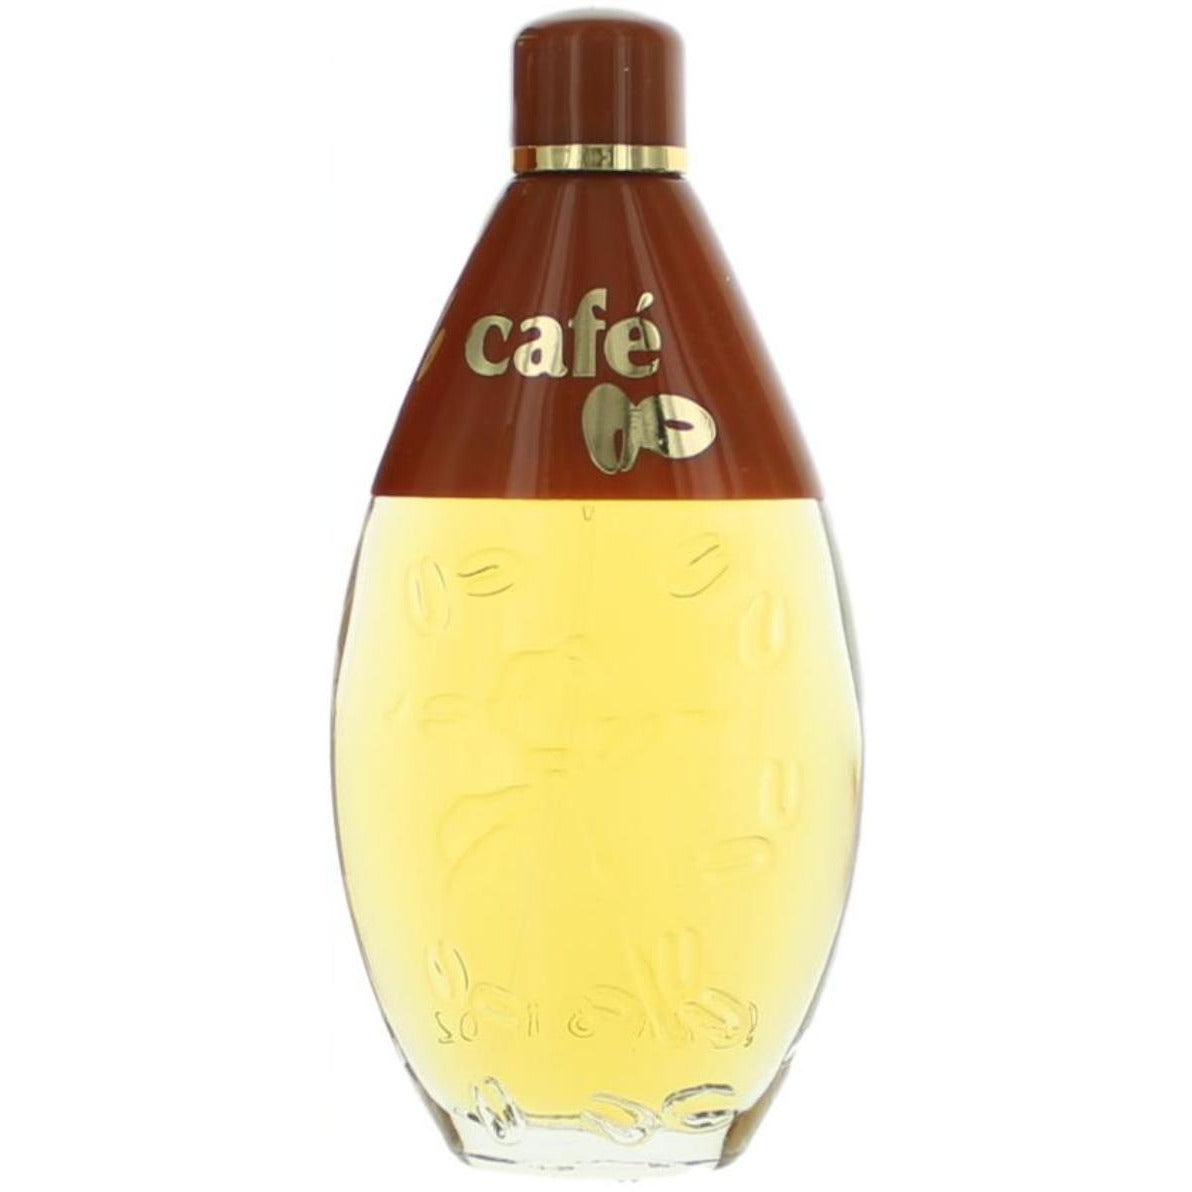 CAFE by Cofinluxe for women EDT 3 oz New Tester